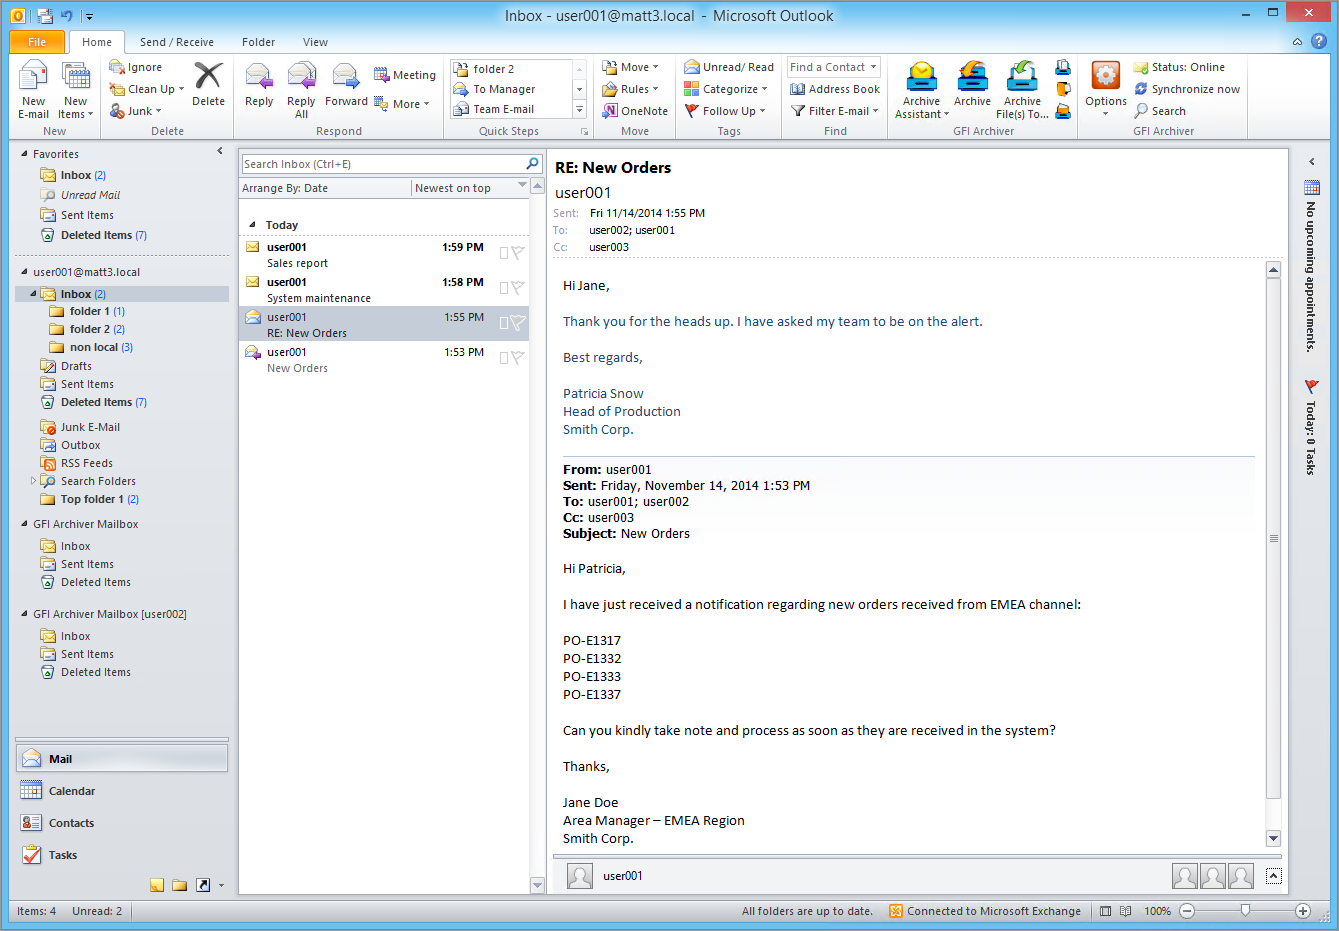 Outlook integration with stub free technology